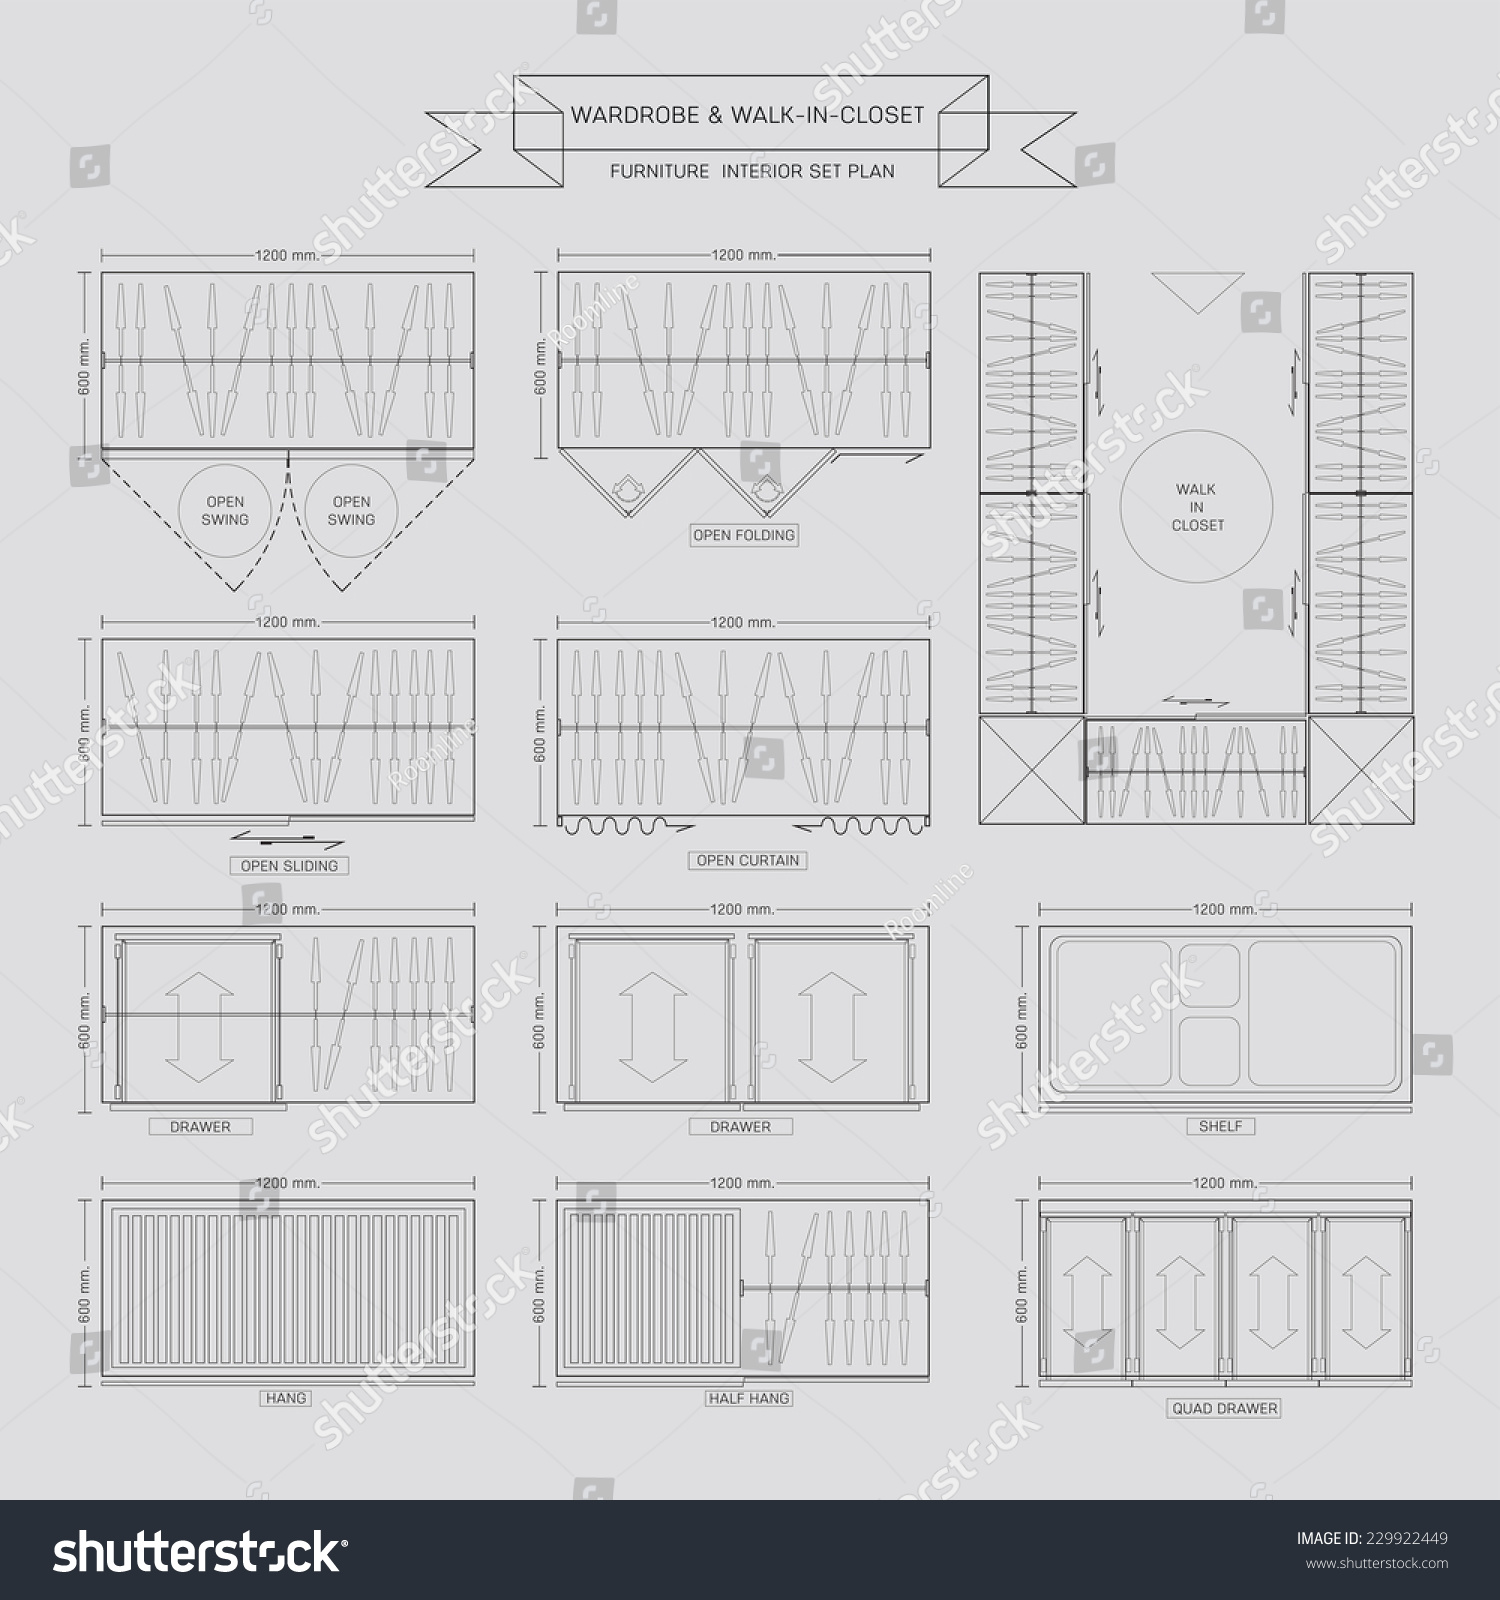 Wardrobe And Walk In Closet Furniture Icon, Top View For Interior Plan